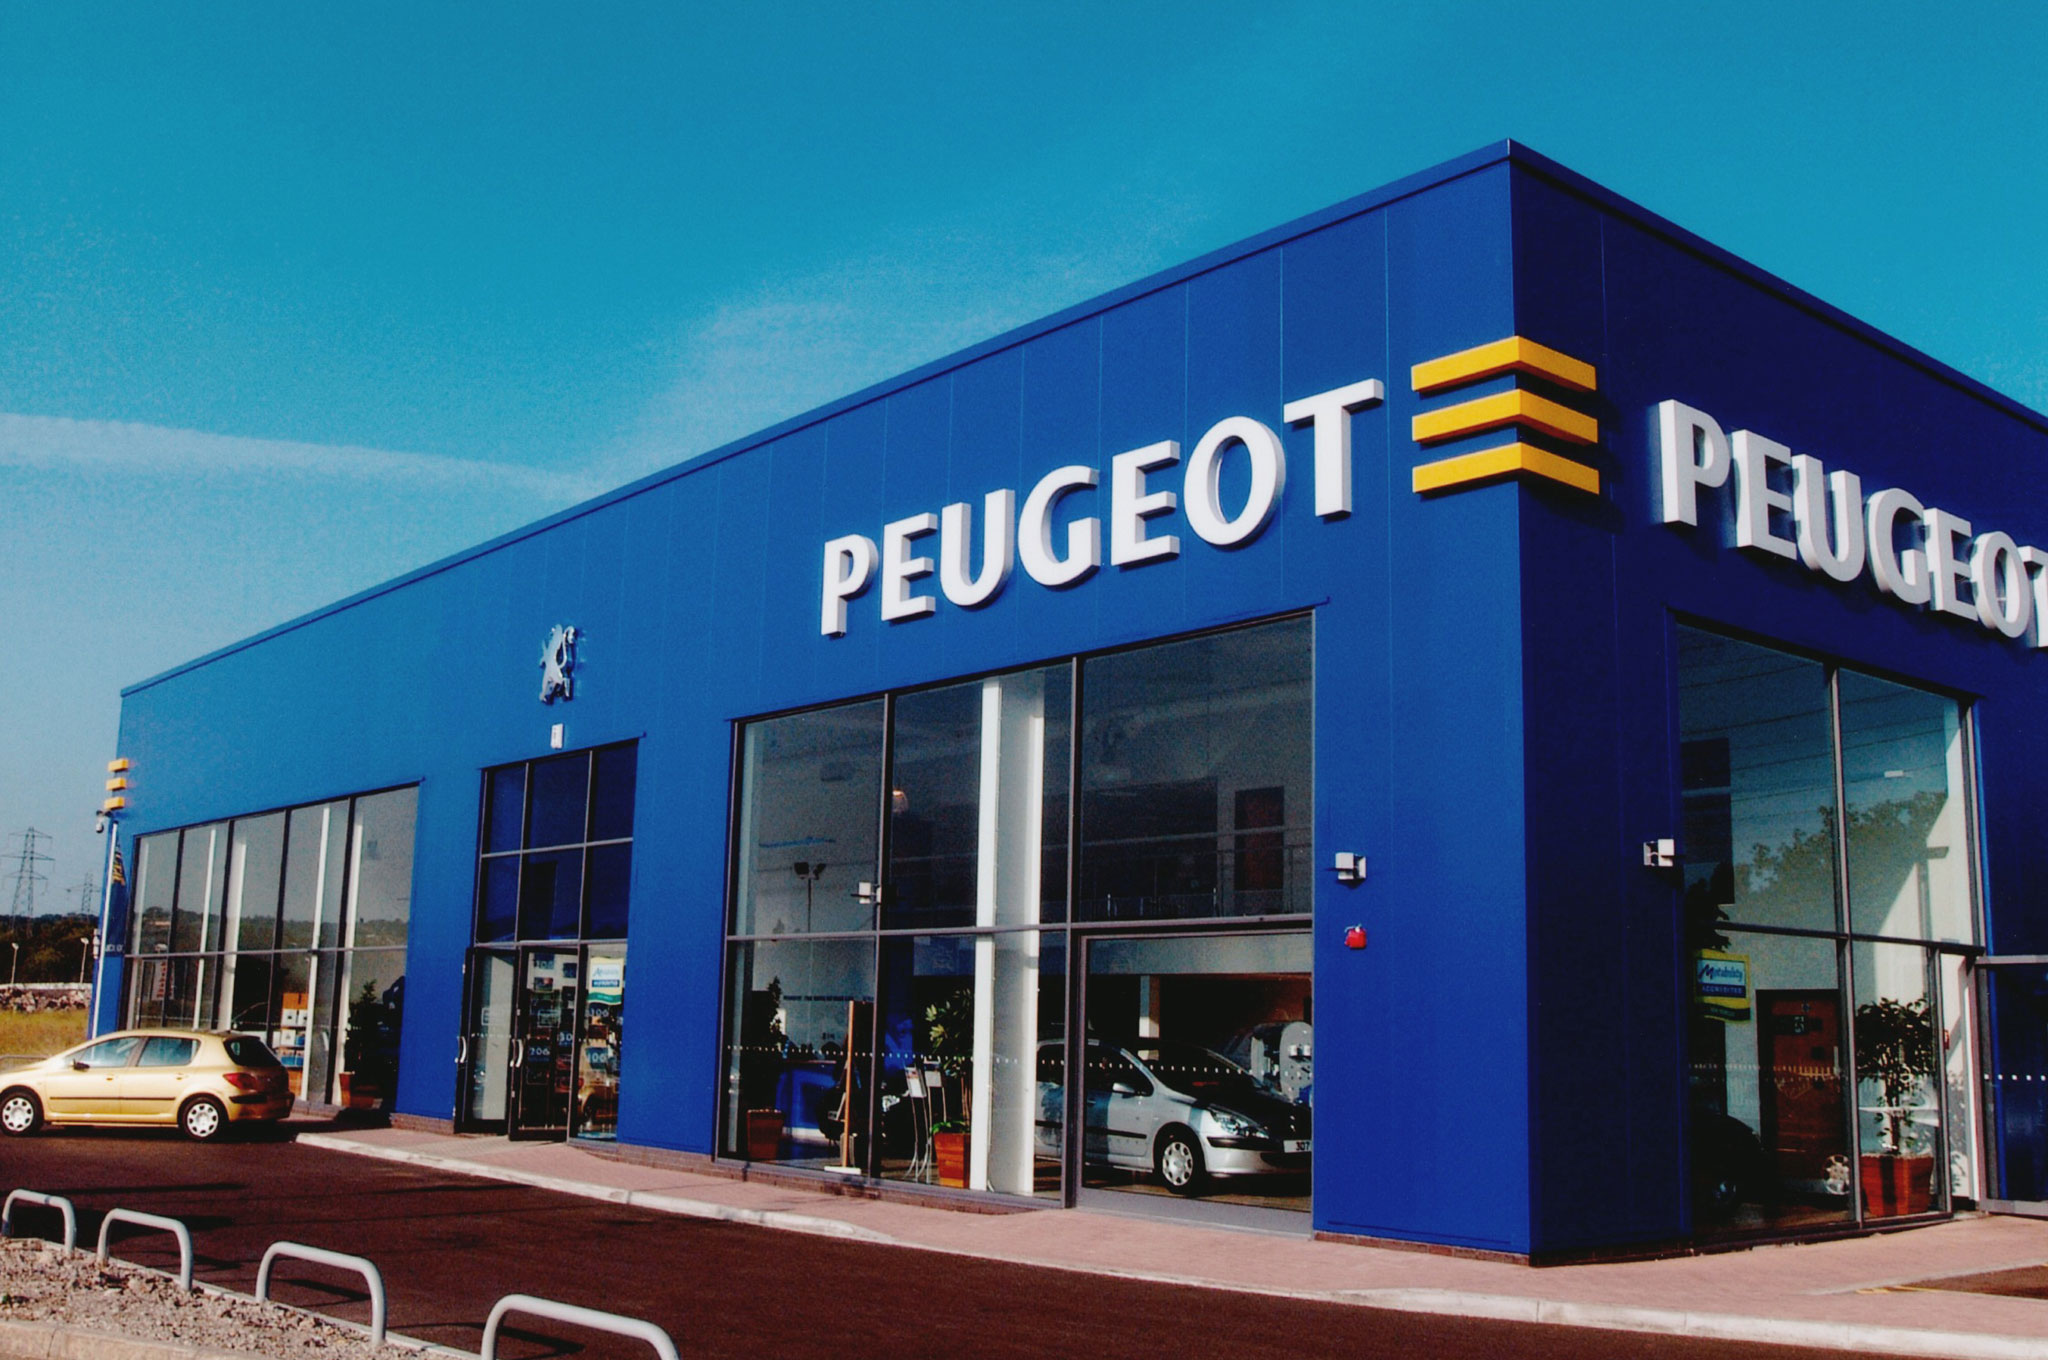 Peugeot Dealership UK1